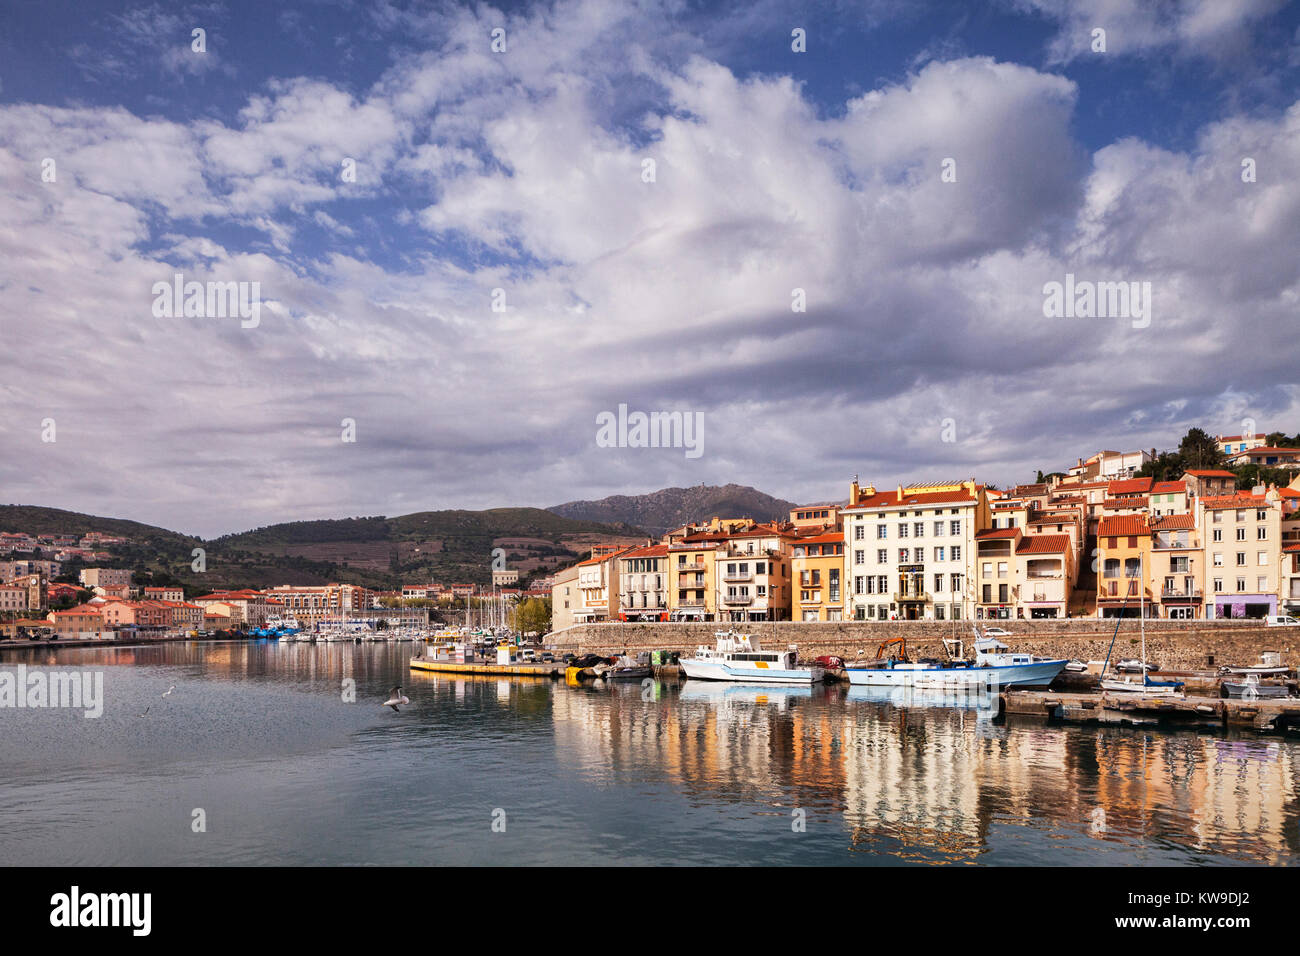 Port Vendres, Languedoc-Roussillon, Pyrenees-Orientales, France, Stock Photo